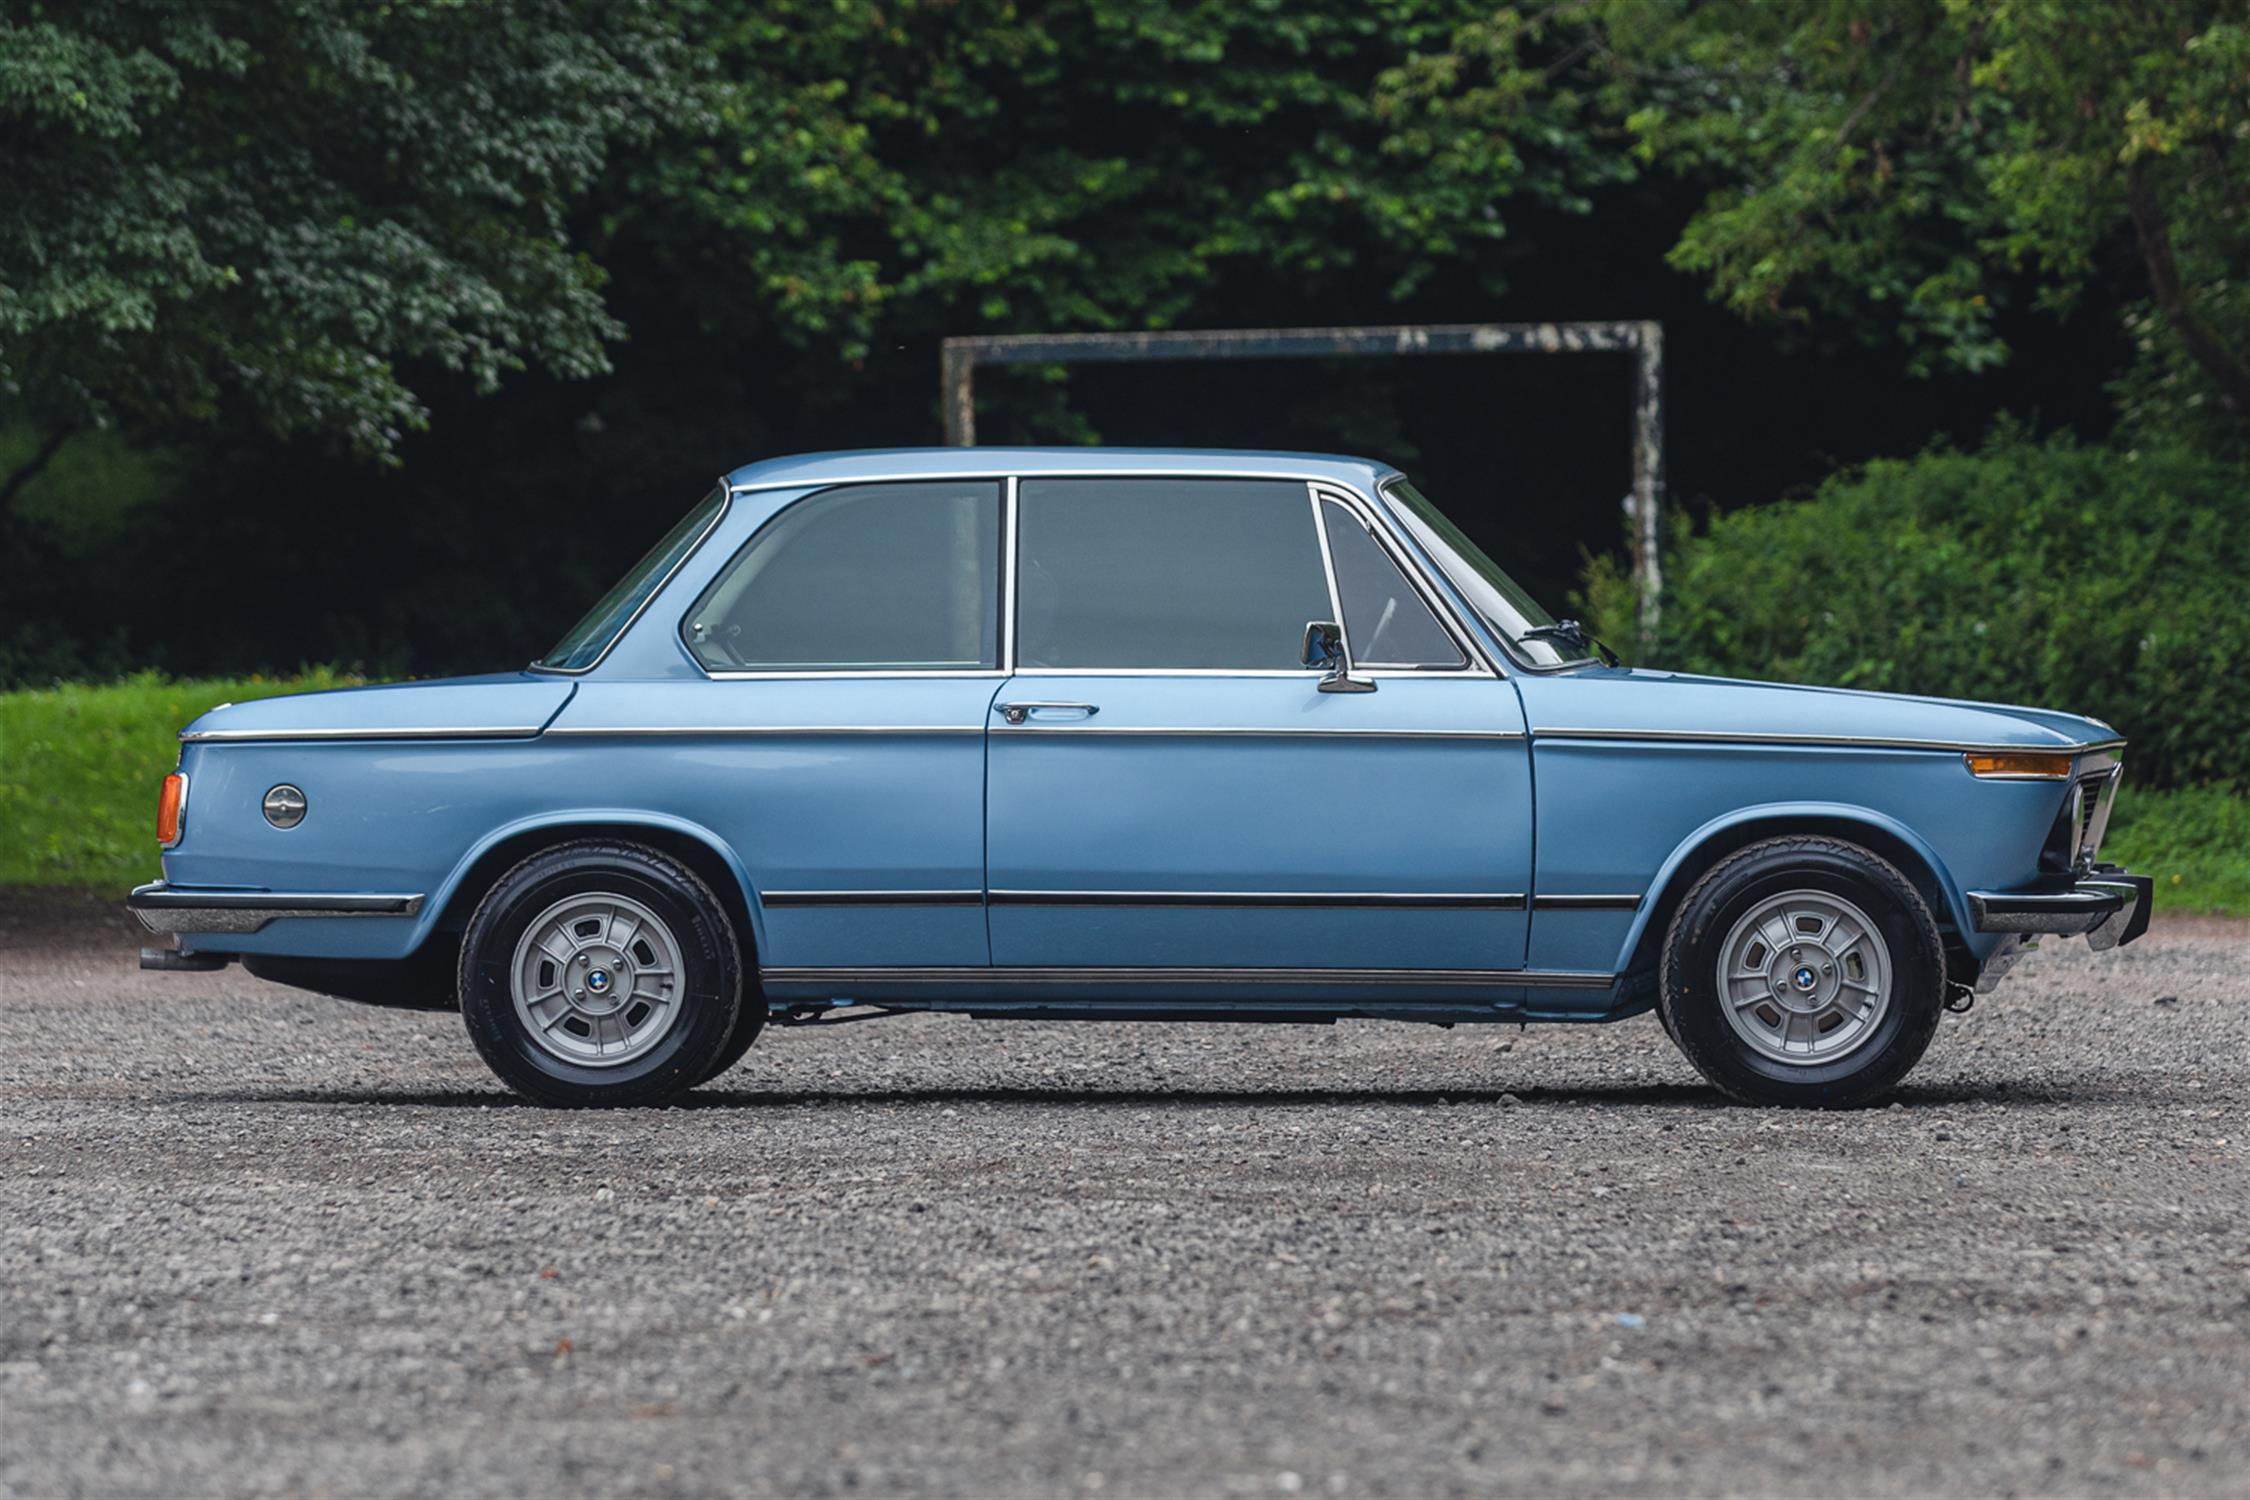 1975 BMW 2002 Tii - Image 6 of 10